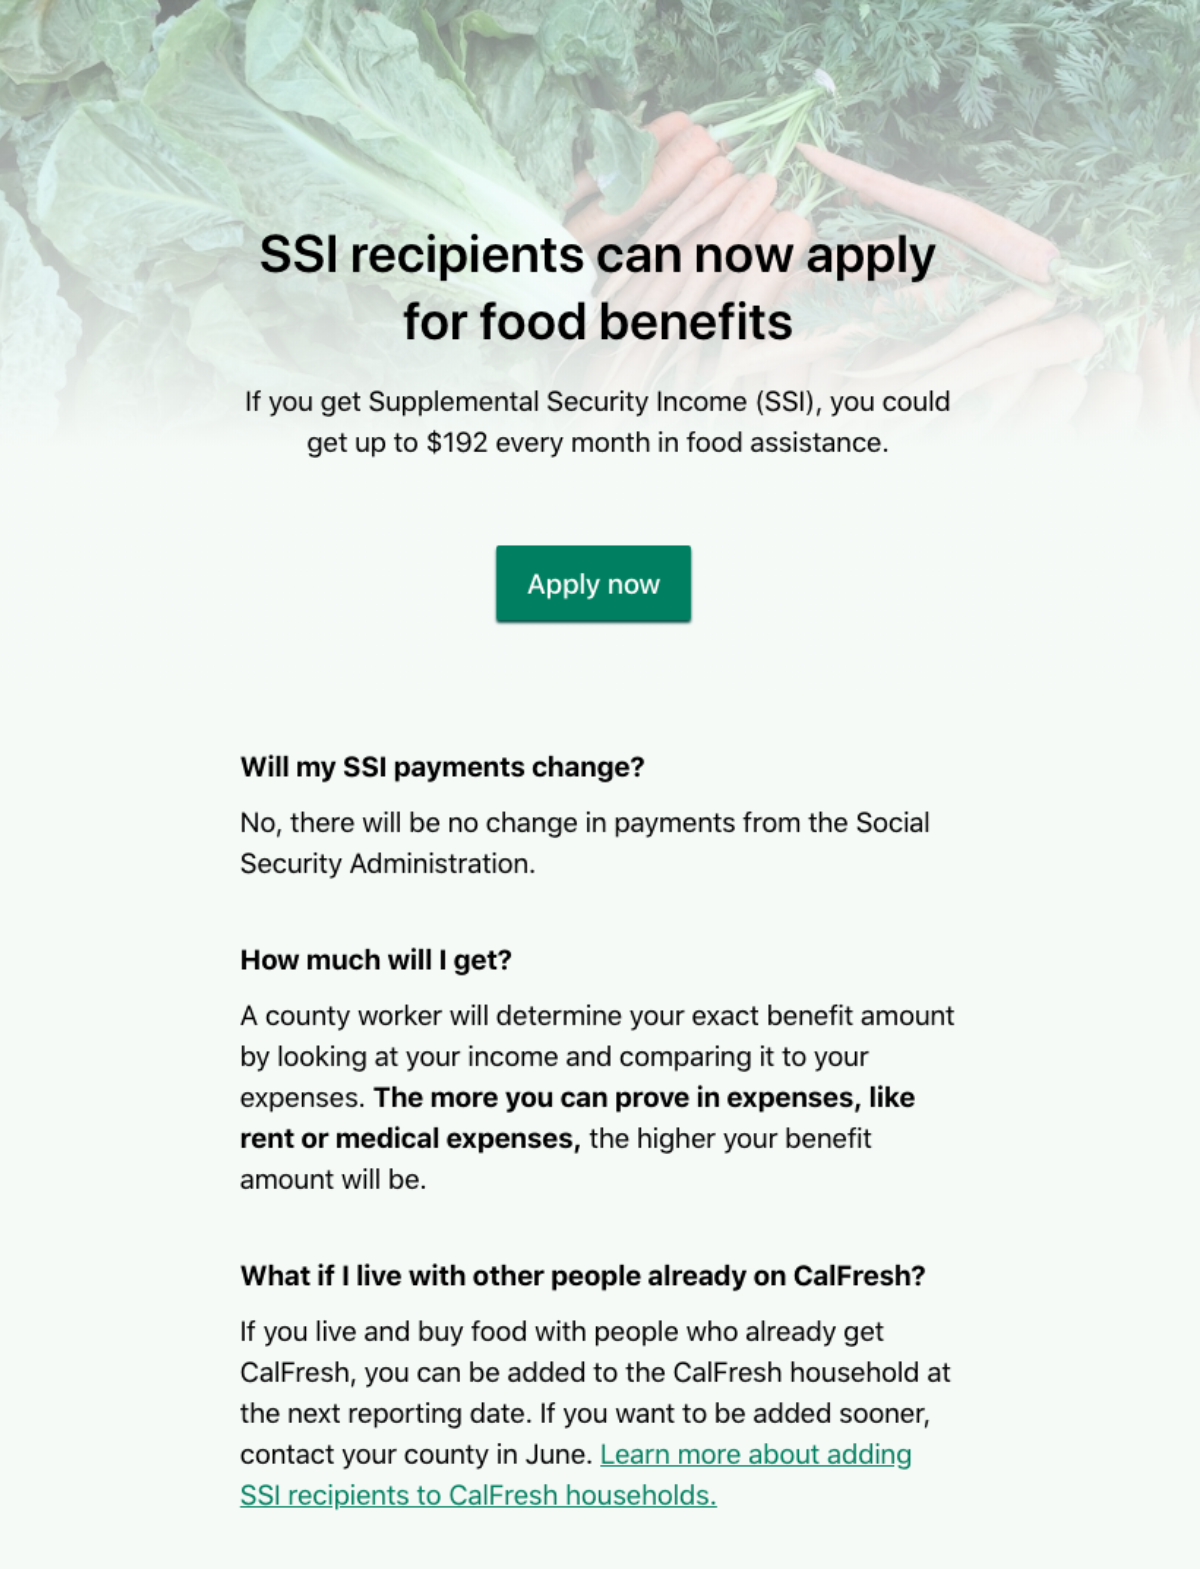 A screenshot of the new customized landing page to GetCalFresh for SSI recipients.​